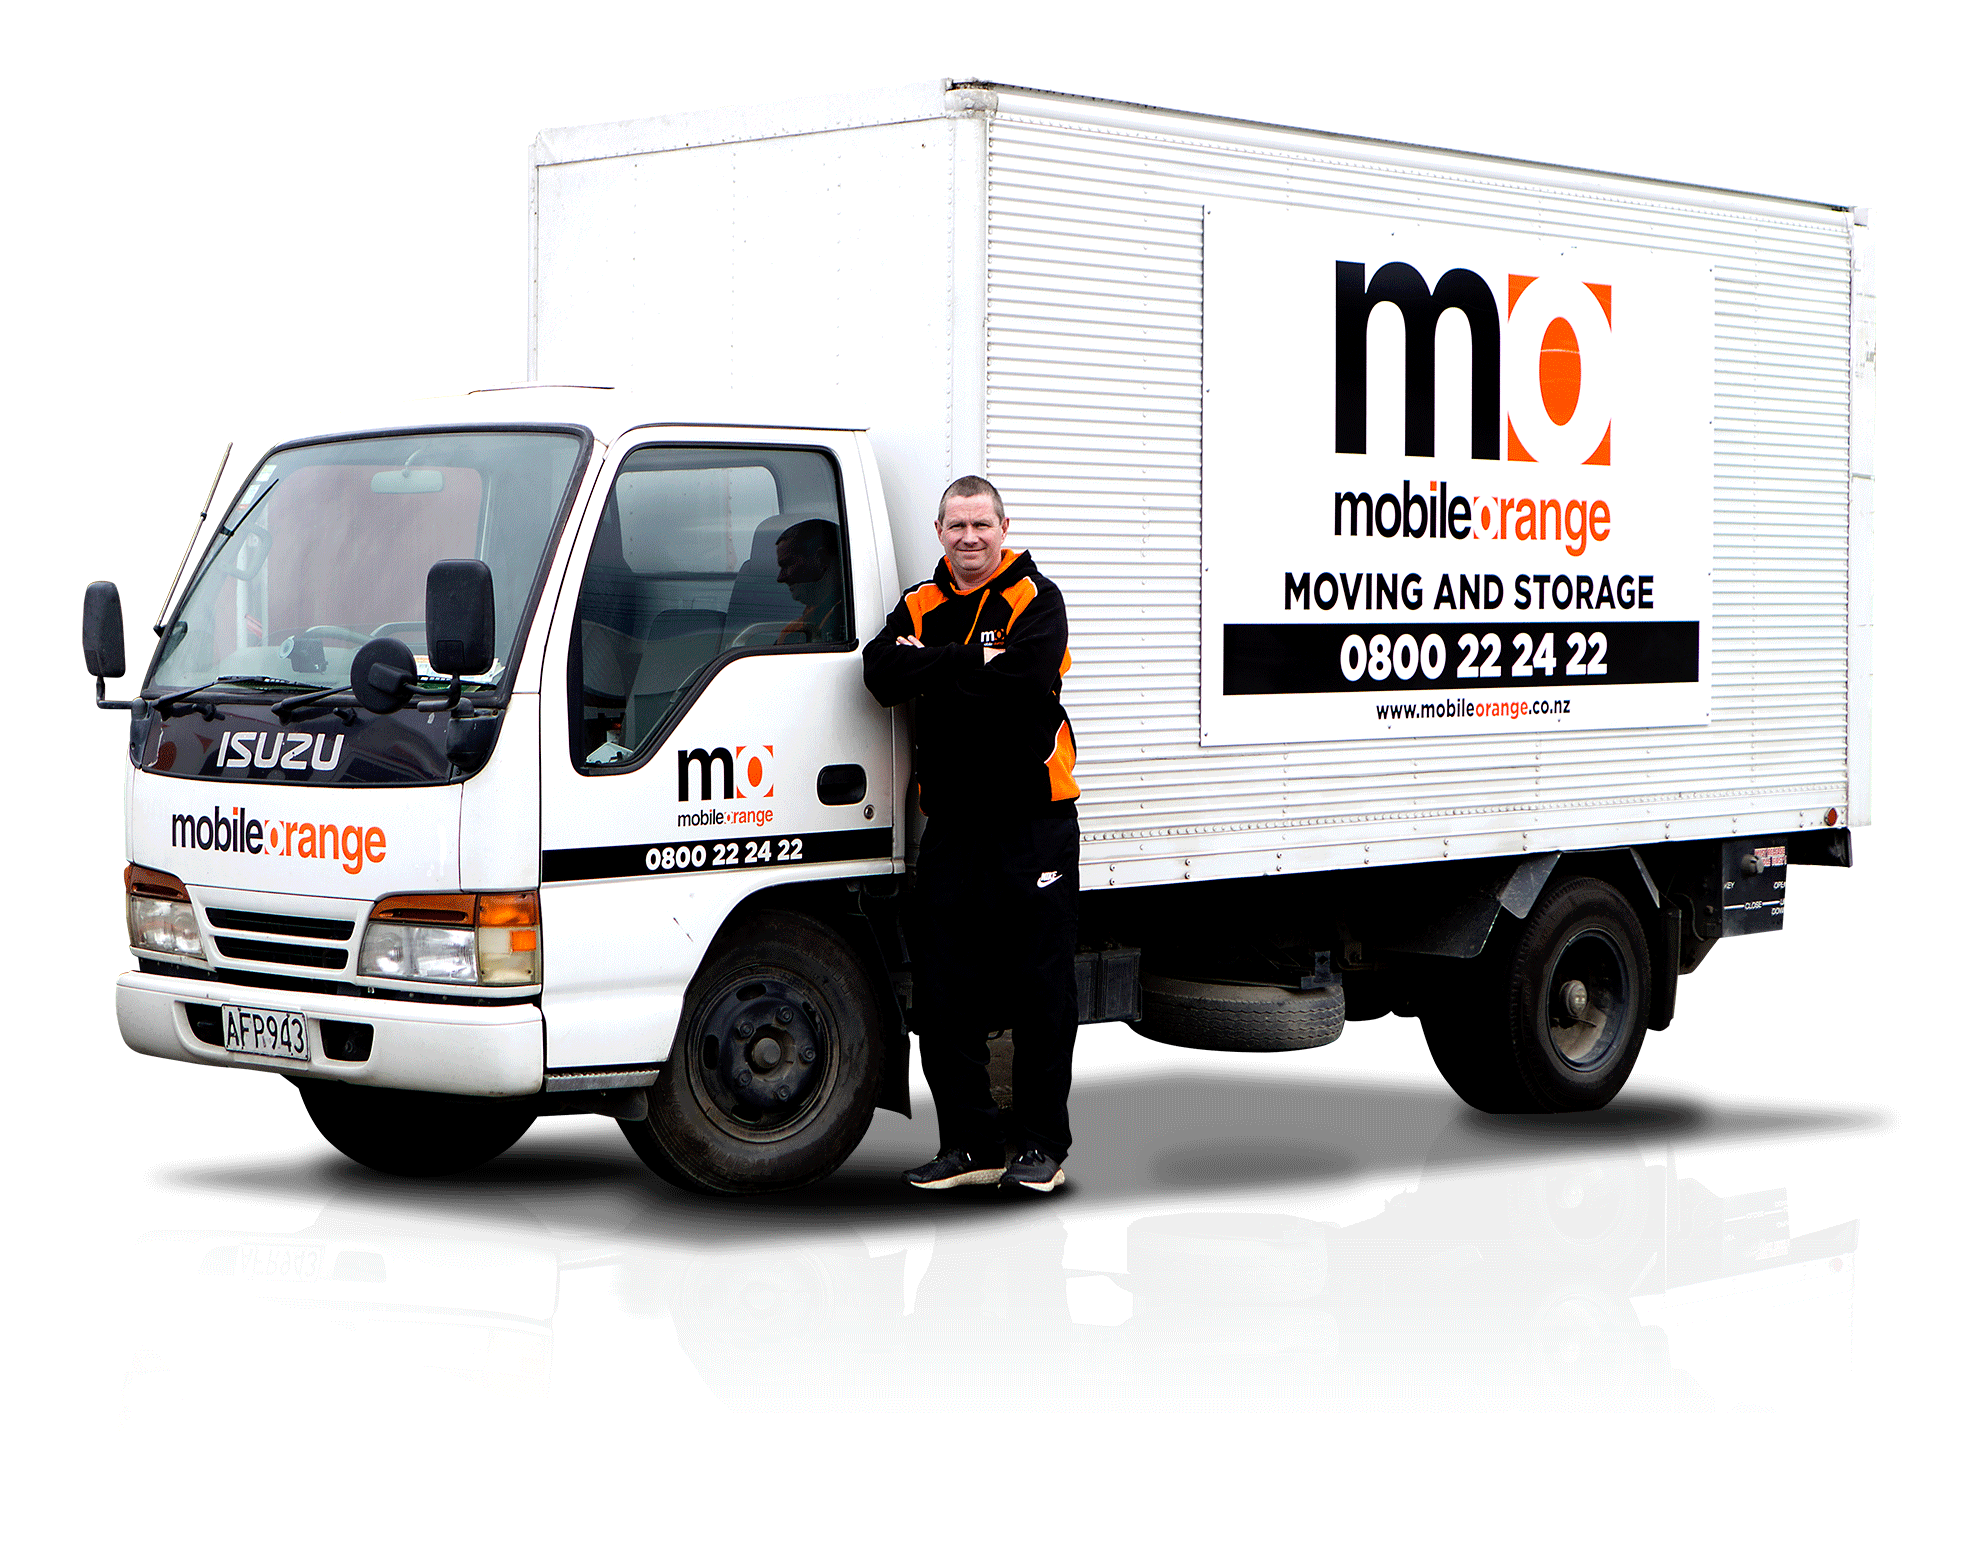 Neville-Truck, Mobile Orange Moving Storage, 561 Kaikorai Valley Road  Dunedin, 9011